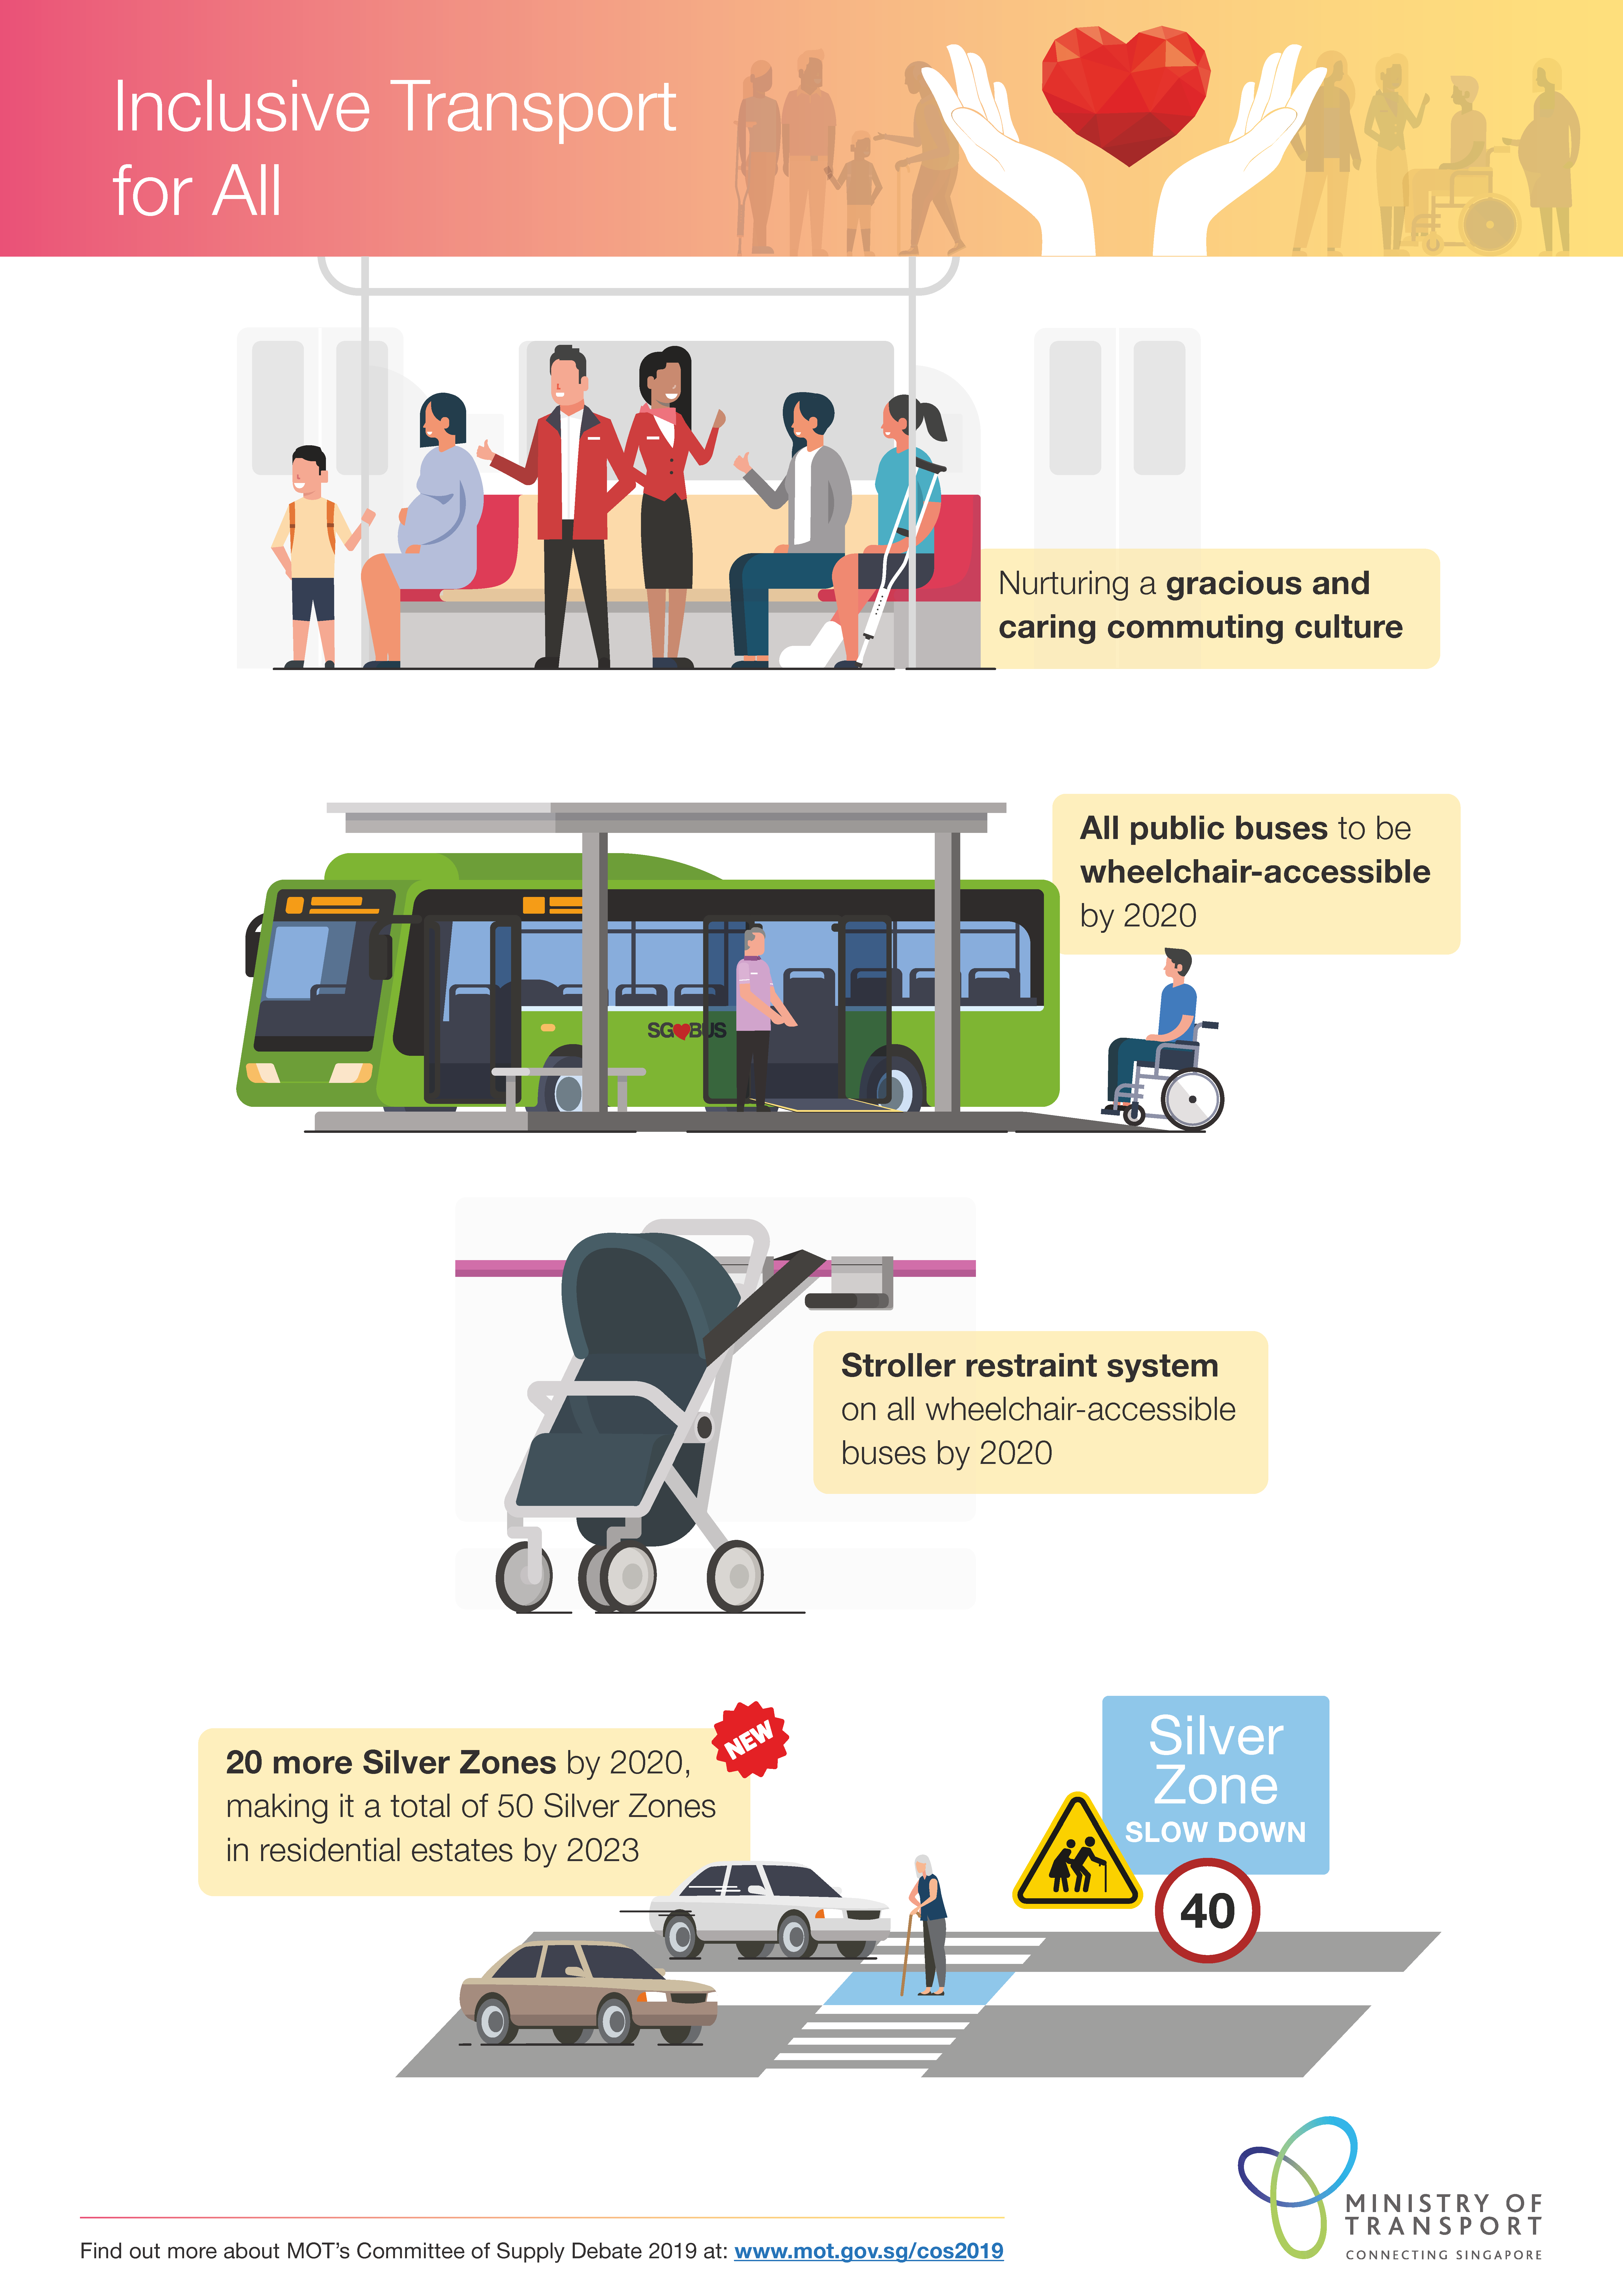 Inclusive Transport for All